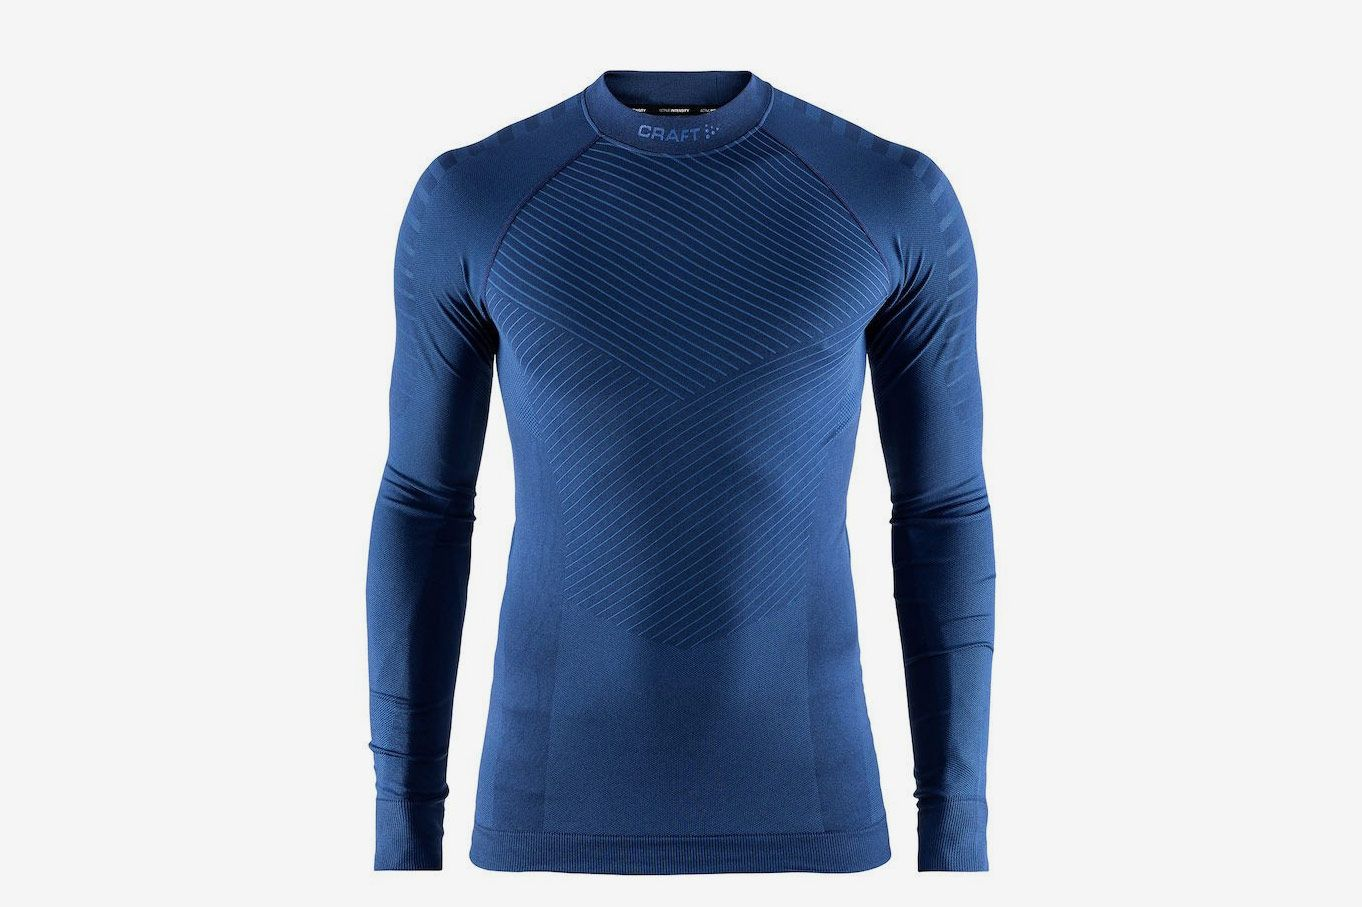 81a47da01ac2d Best base layers for cycling